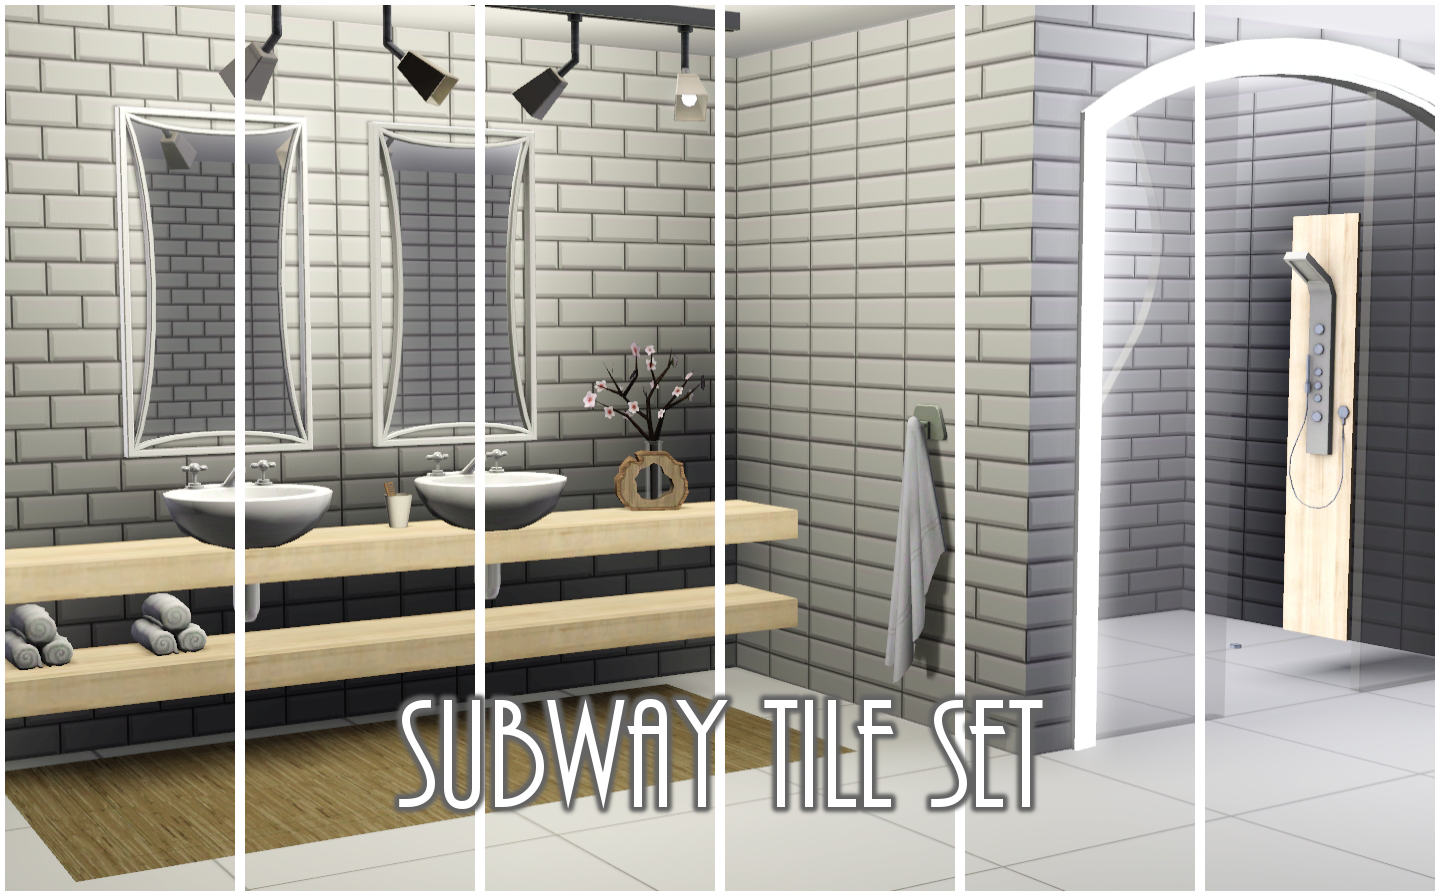 My sims 3 blog beveled subway tiles by peacemaker ic beveled subway tiles by peacemaker ic dailygadgetfo Image collections